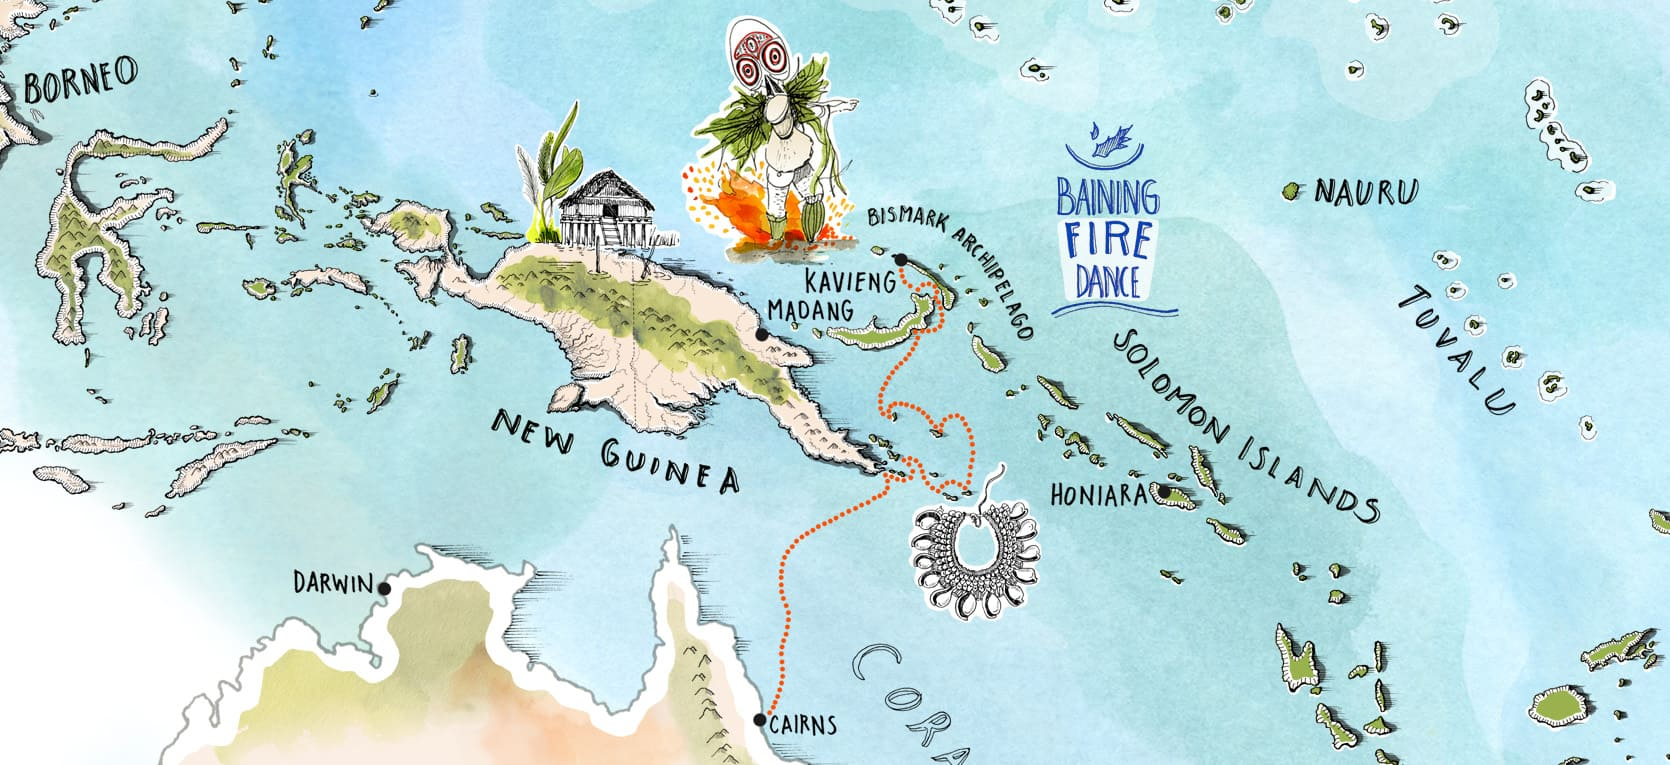 Small Islands of The World - Kavieng to Cairns Map